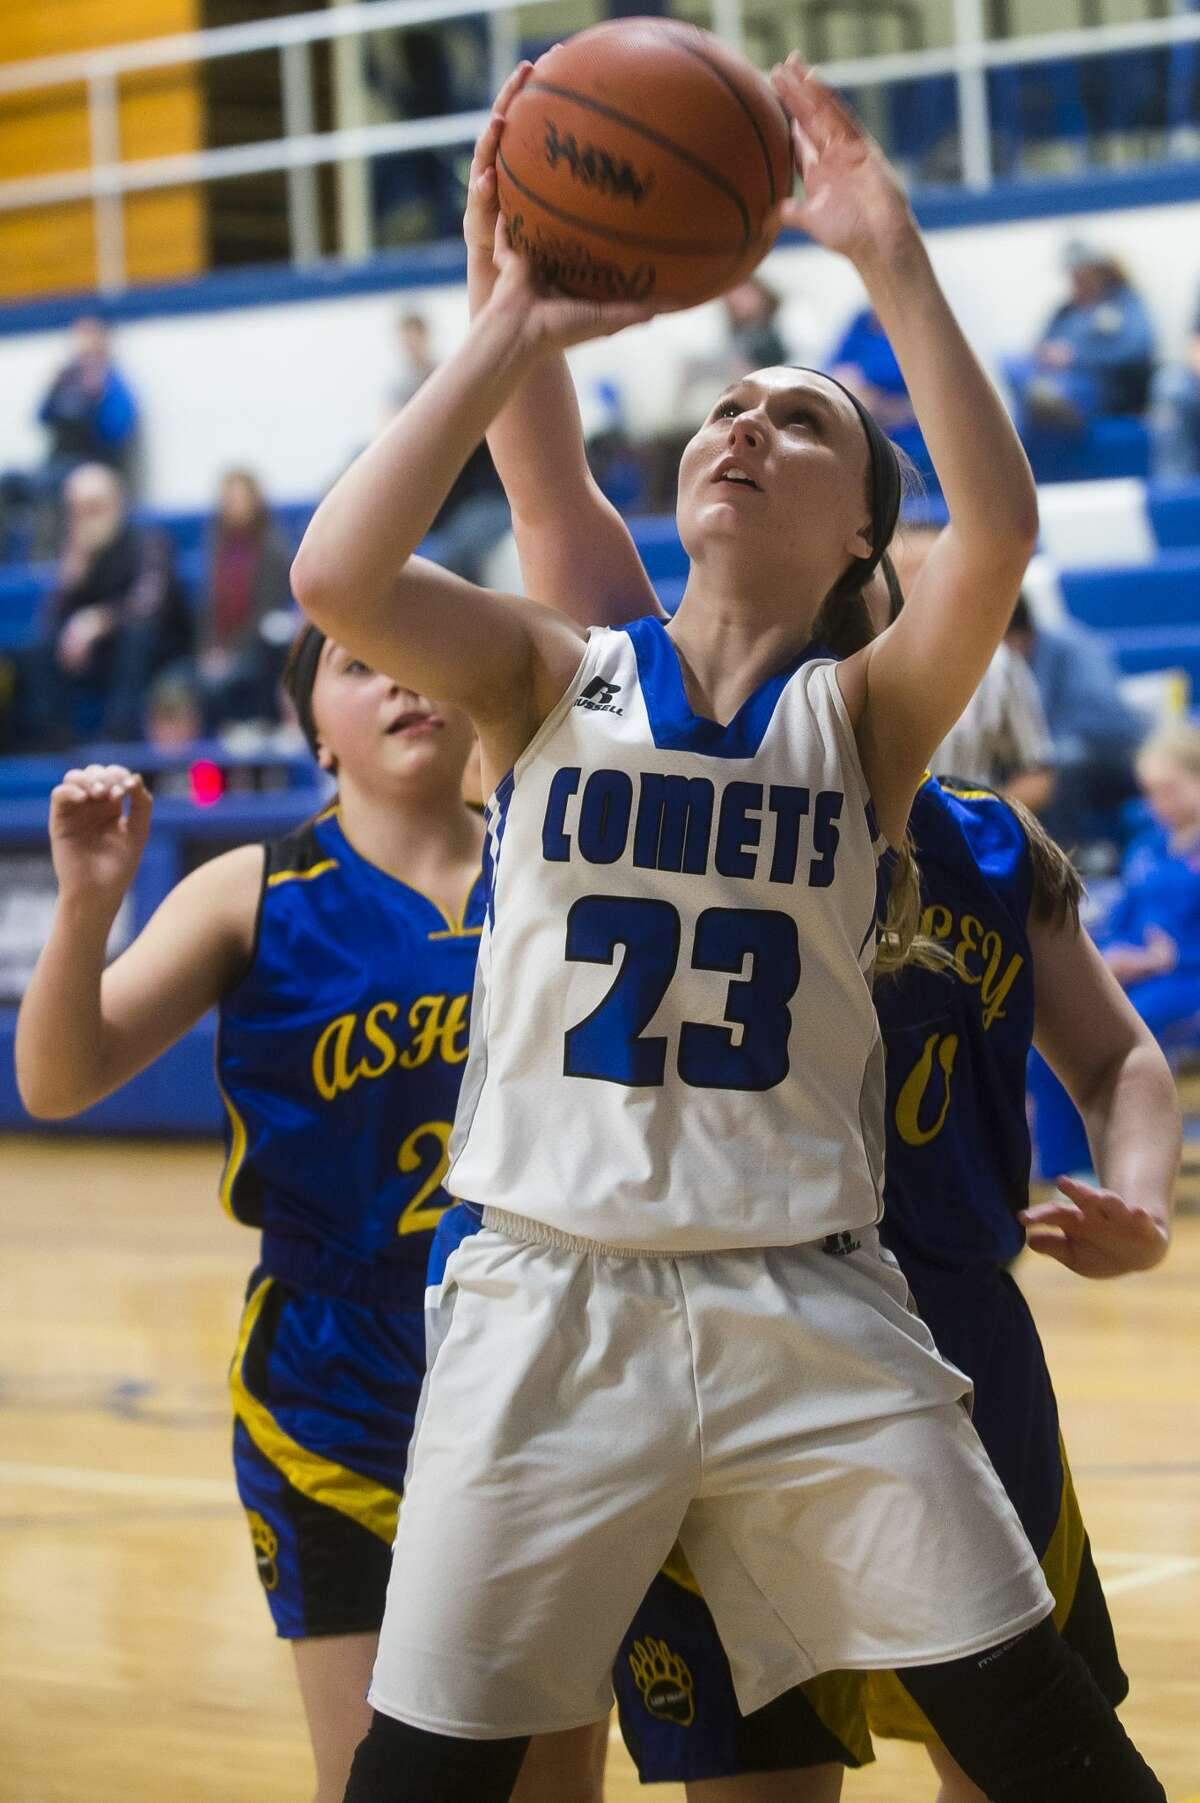 Coleman sophomore Abigail Tubbs takes a shot during the Comets' game against Ashley on Thursday, Feb. 15, 2018 at Coleman High School. (Katy Kildee/kkildee@mdn.net)